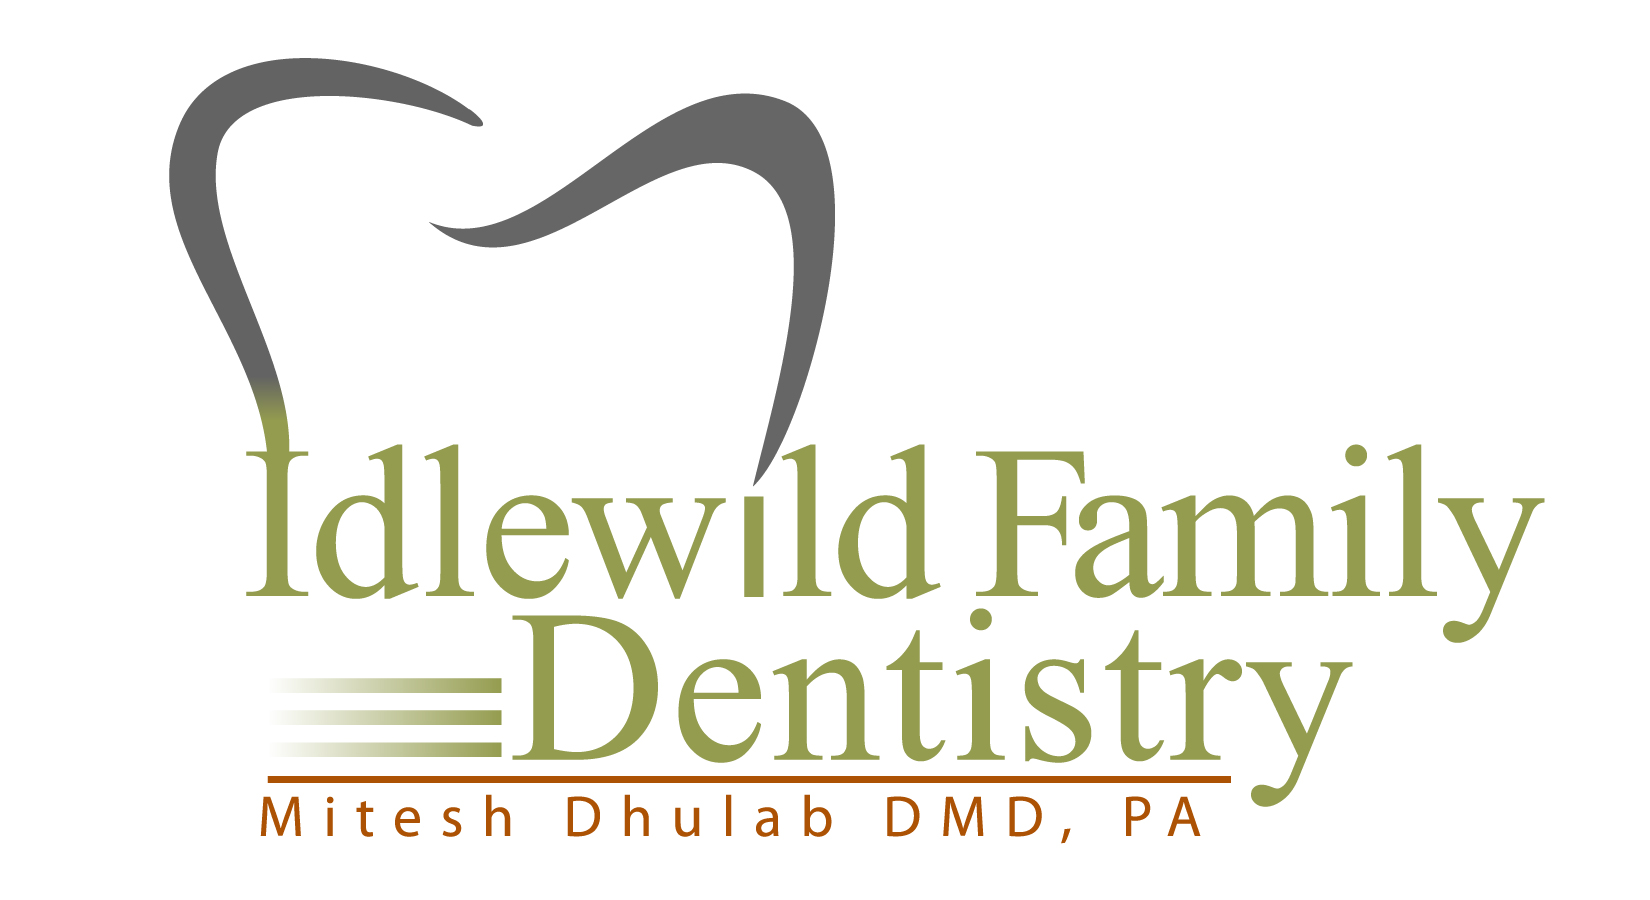 Idlewild Family Dentistry